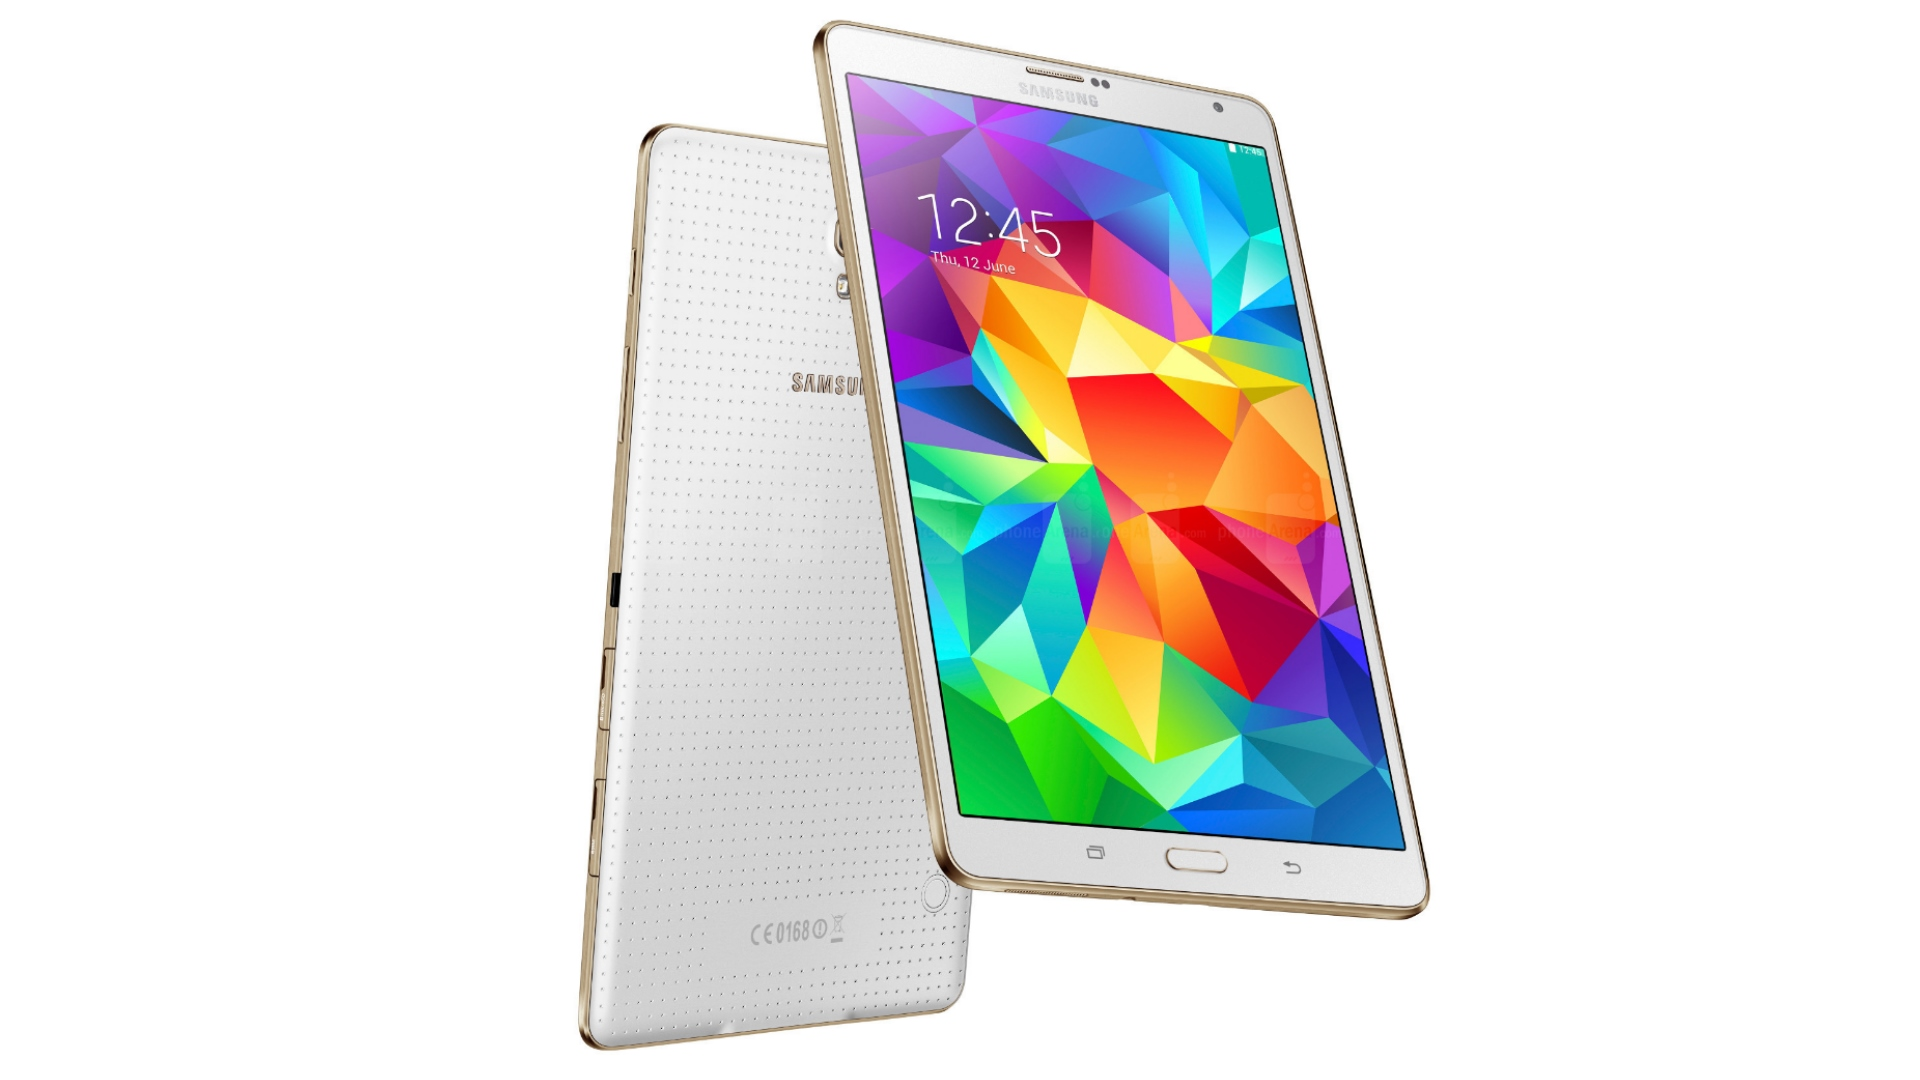 galaxy tab s 8.4 deals